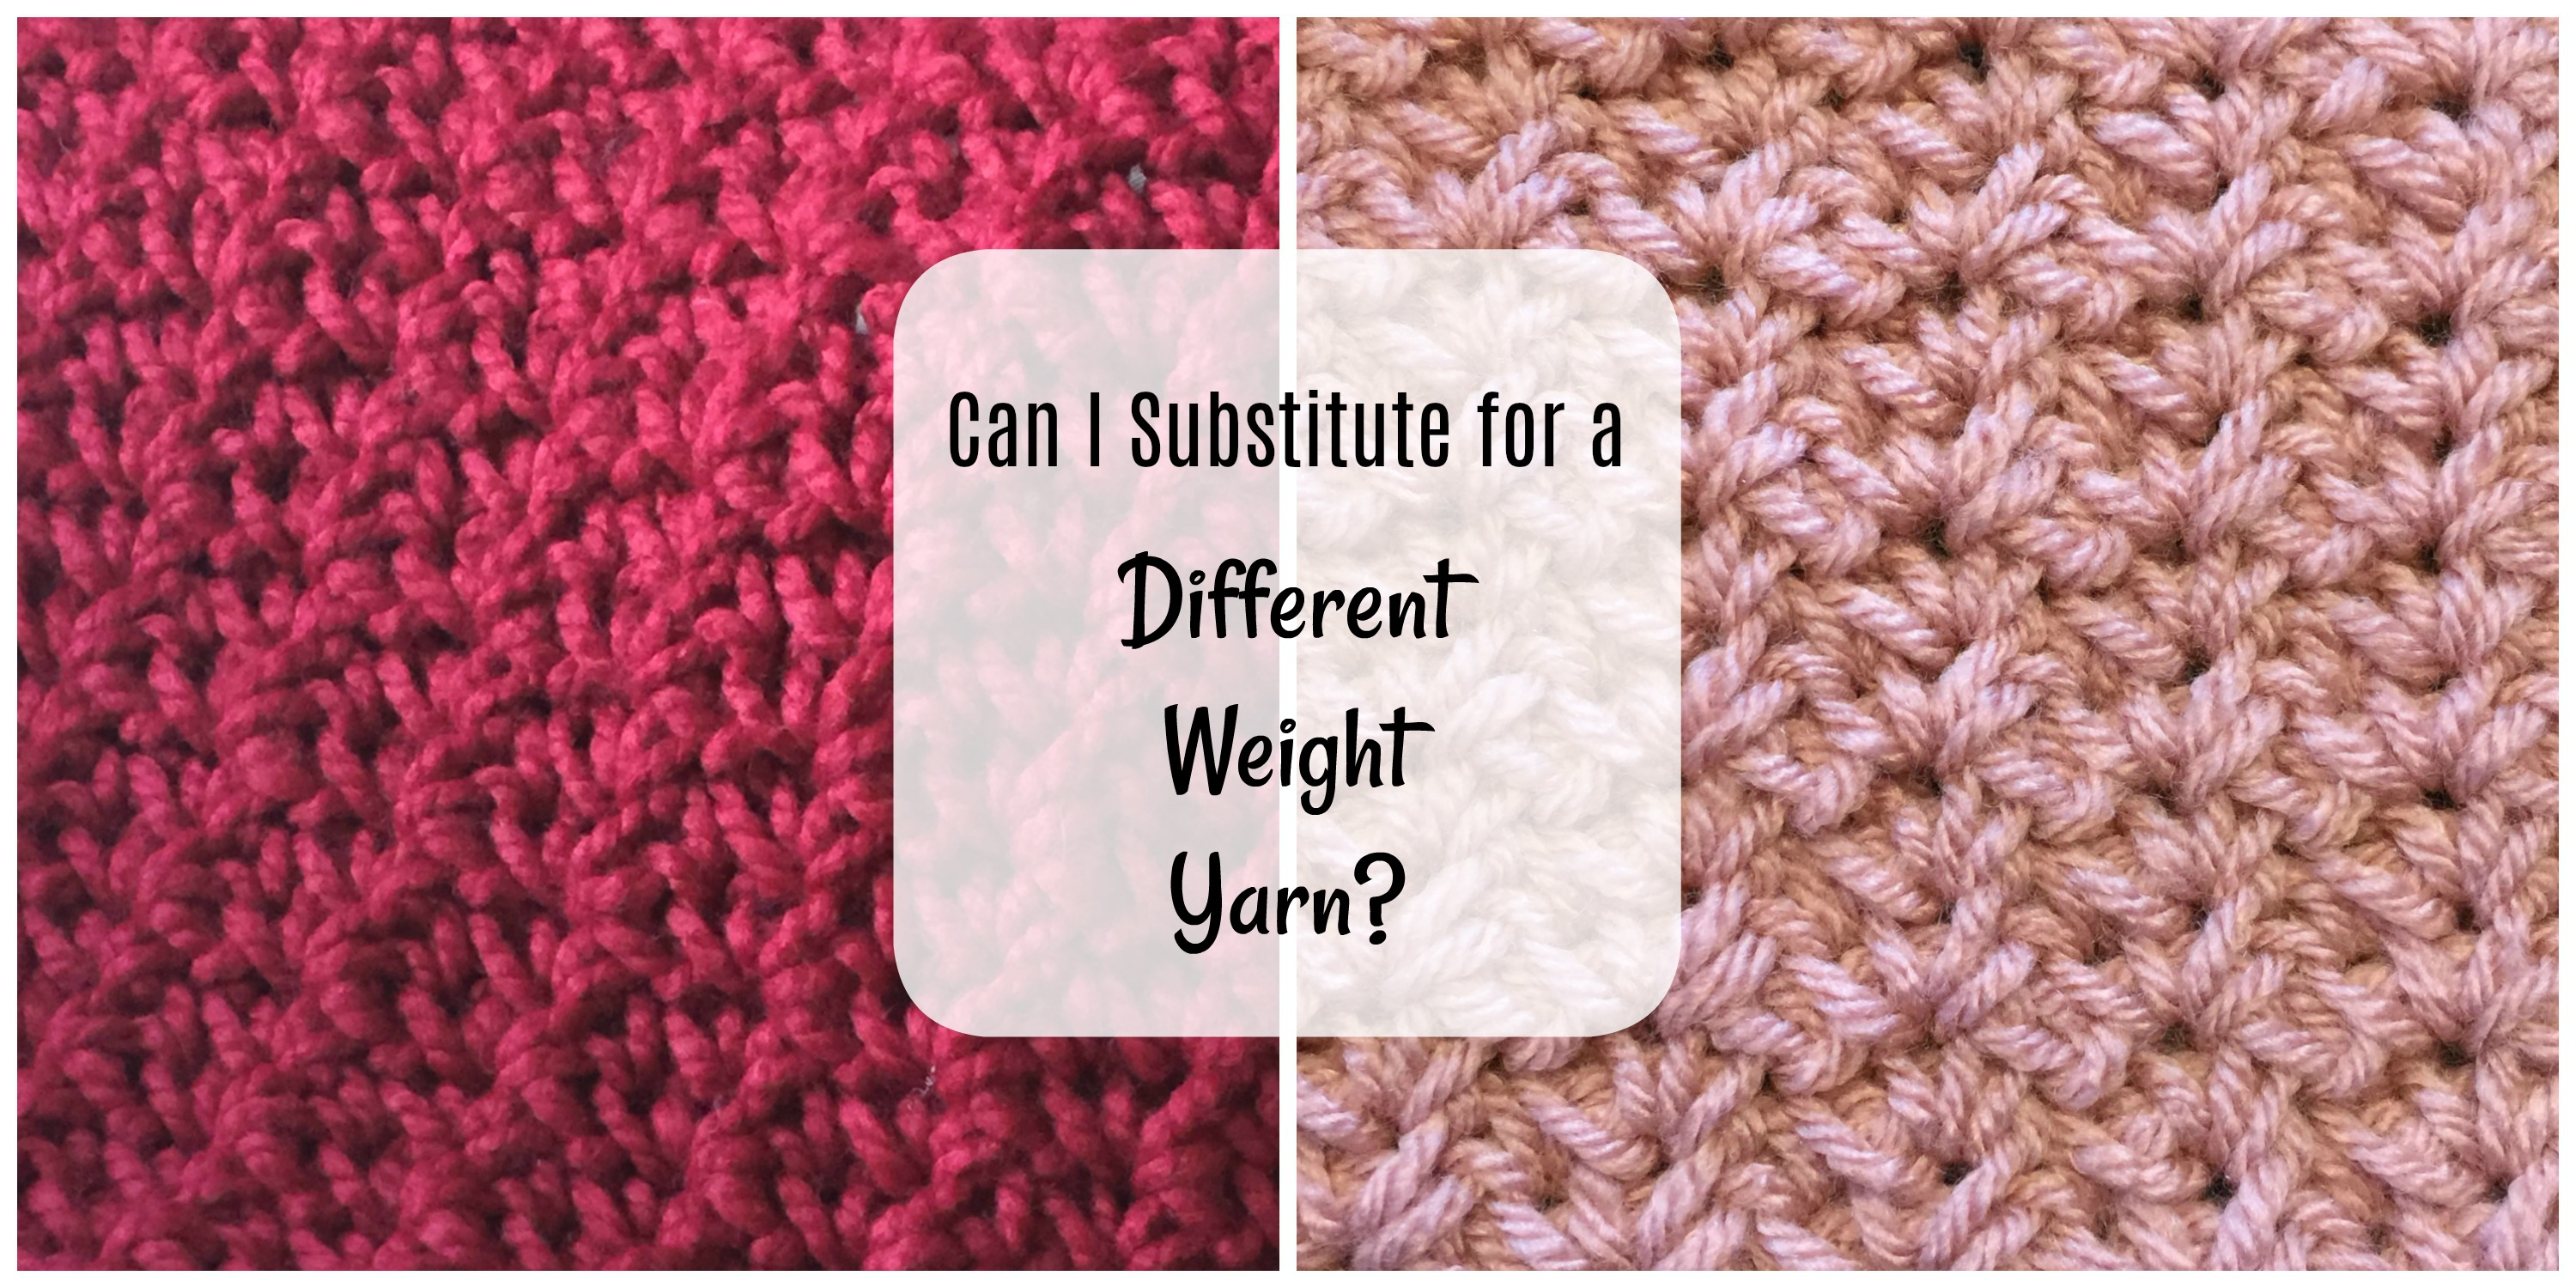 Can I substitute a different weight yarn for my crochet project?